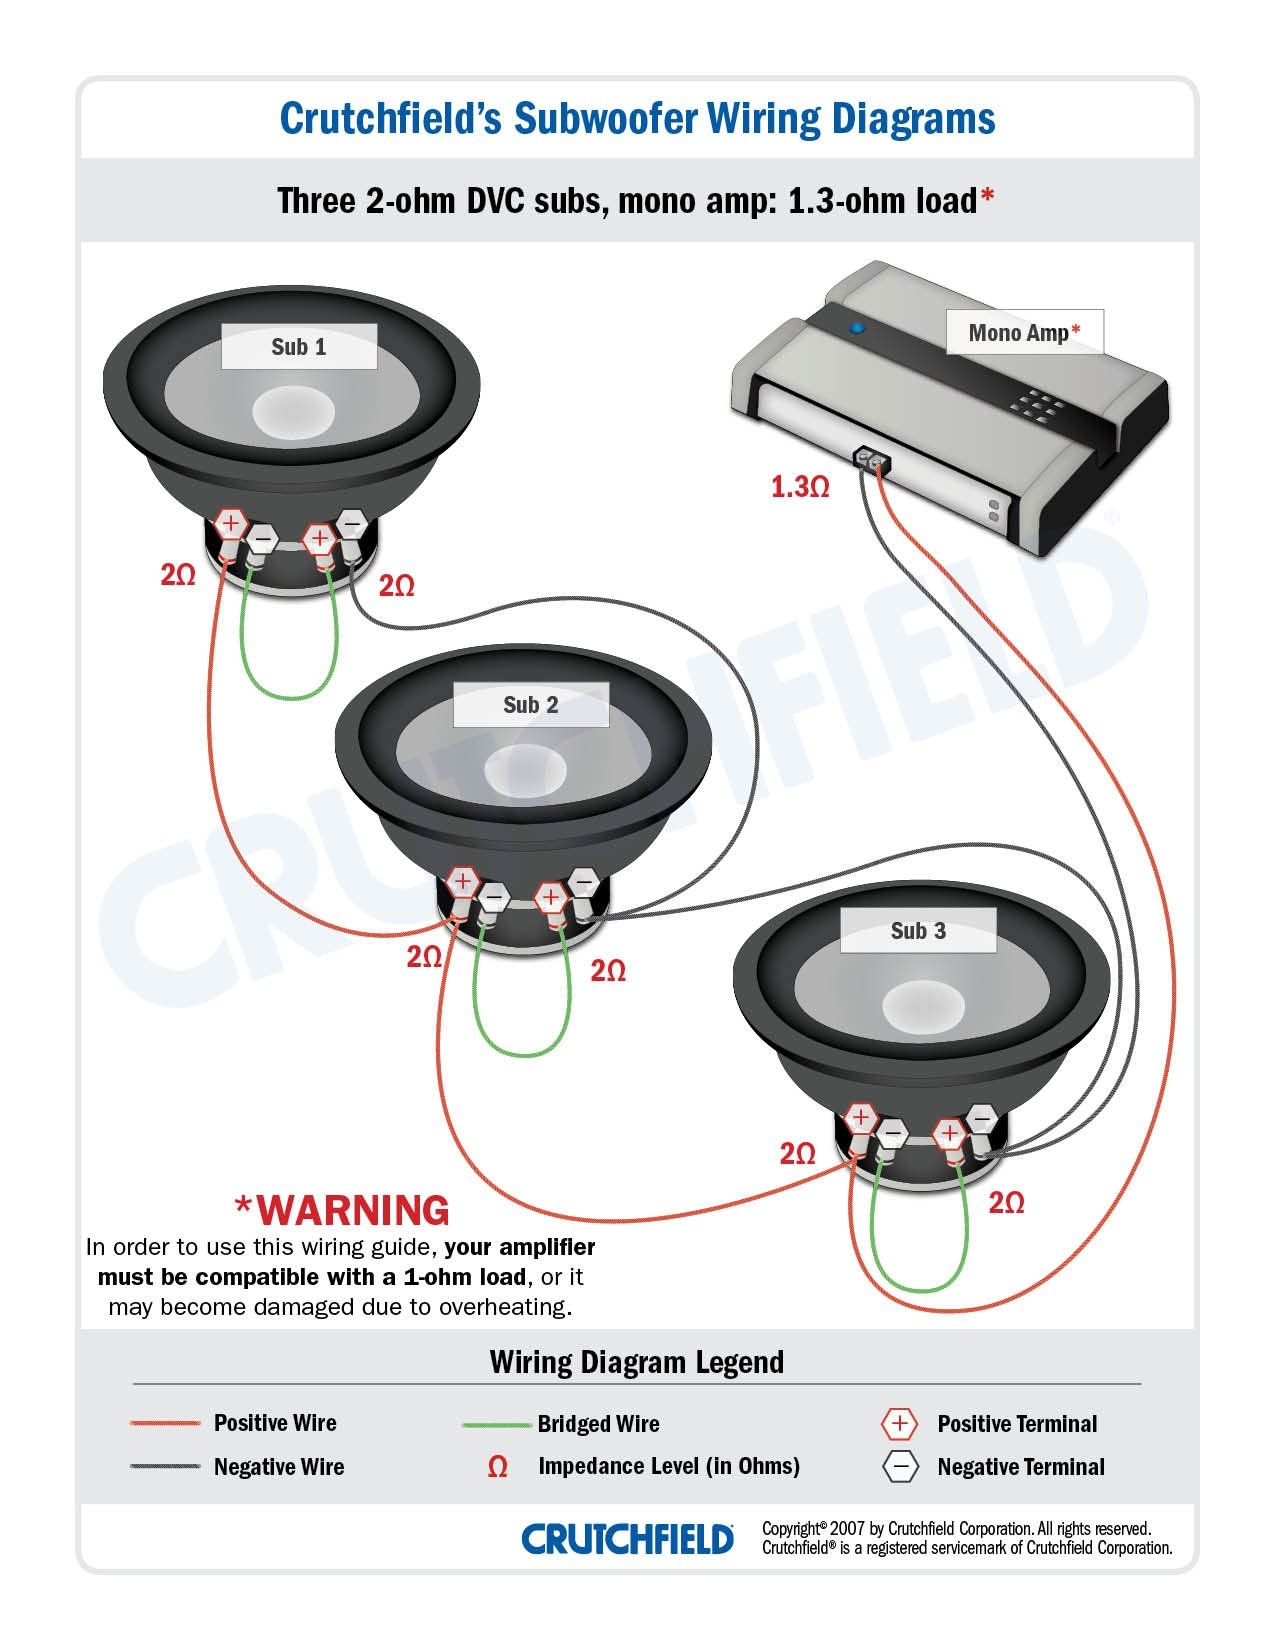 3 DVC 2 ohm mono low imp how to match subwoofers and amplifiers boston subsat 6 wiring diagram at reclaimingppi.co